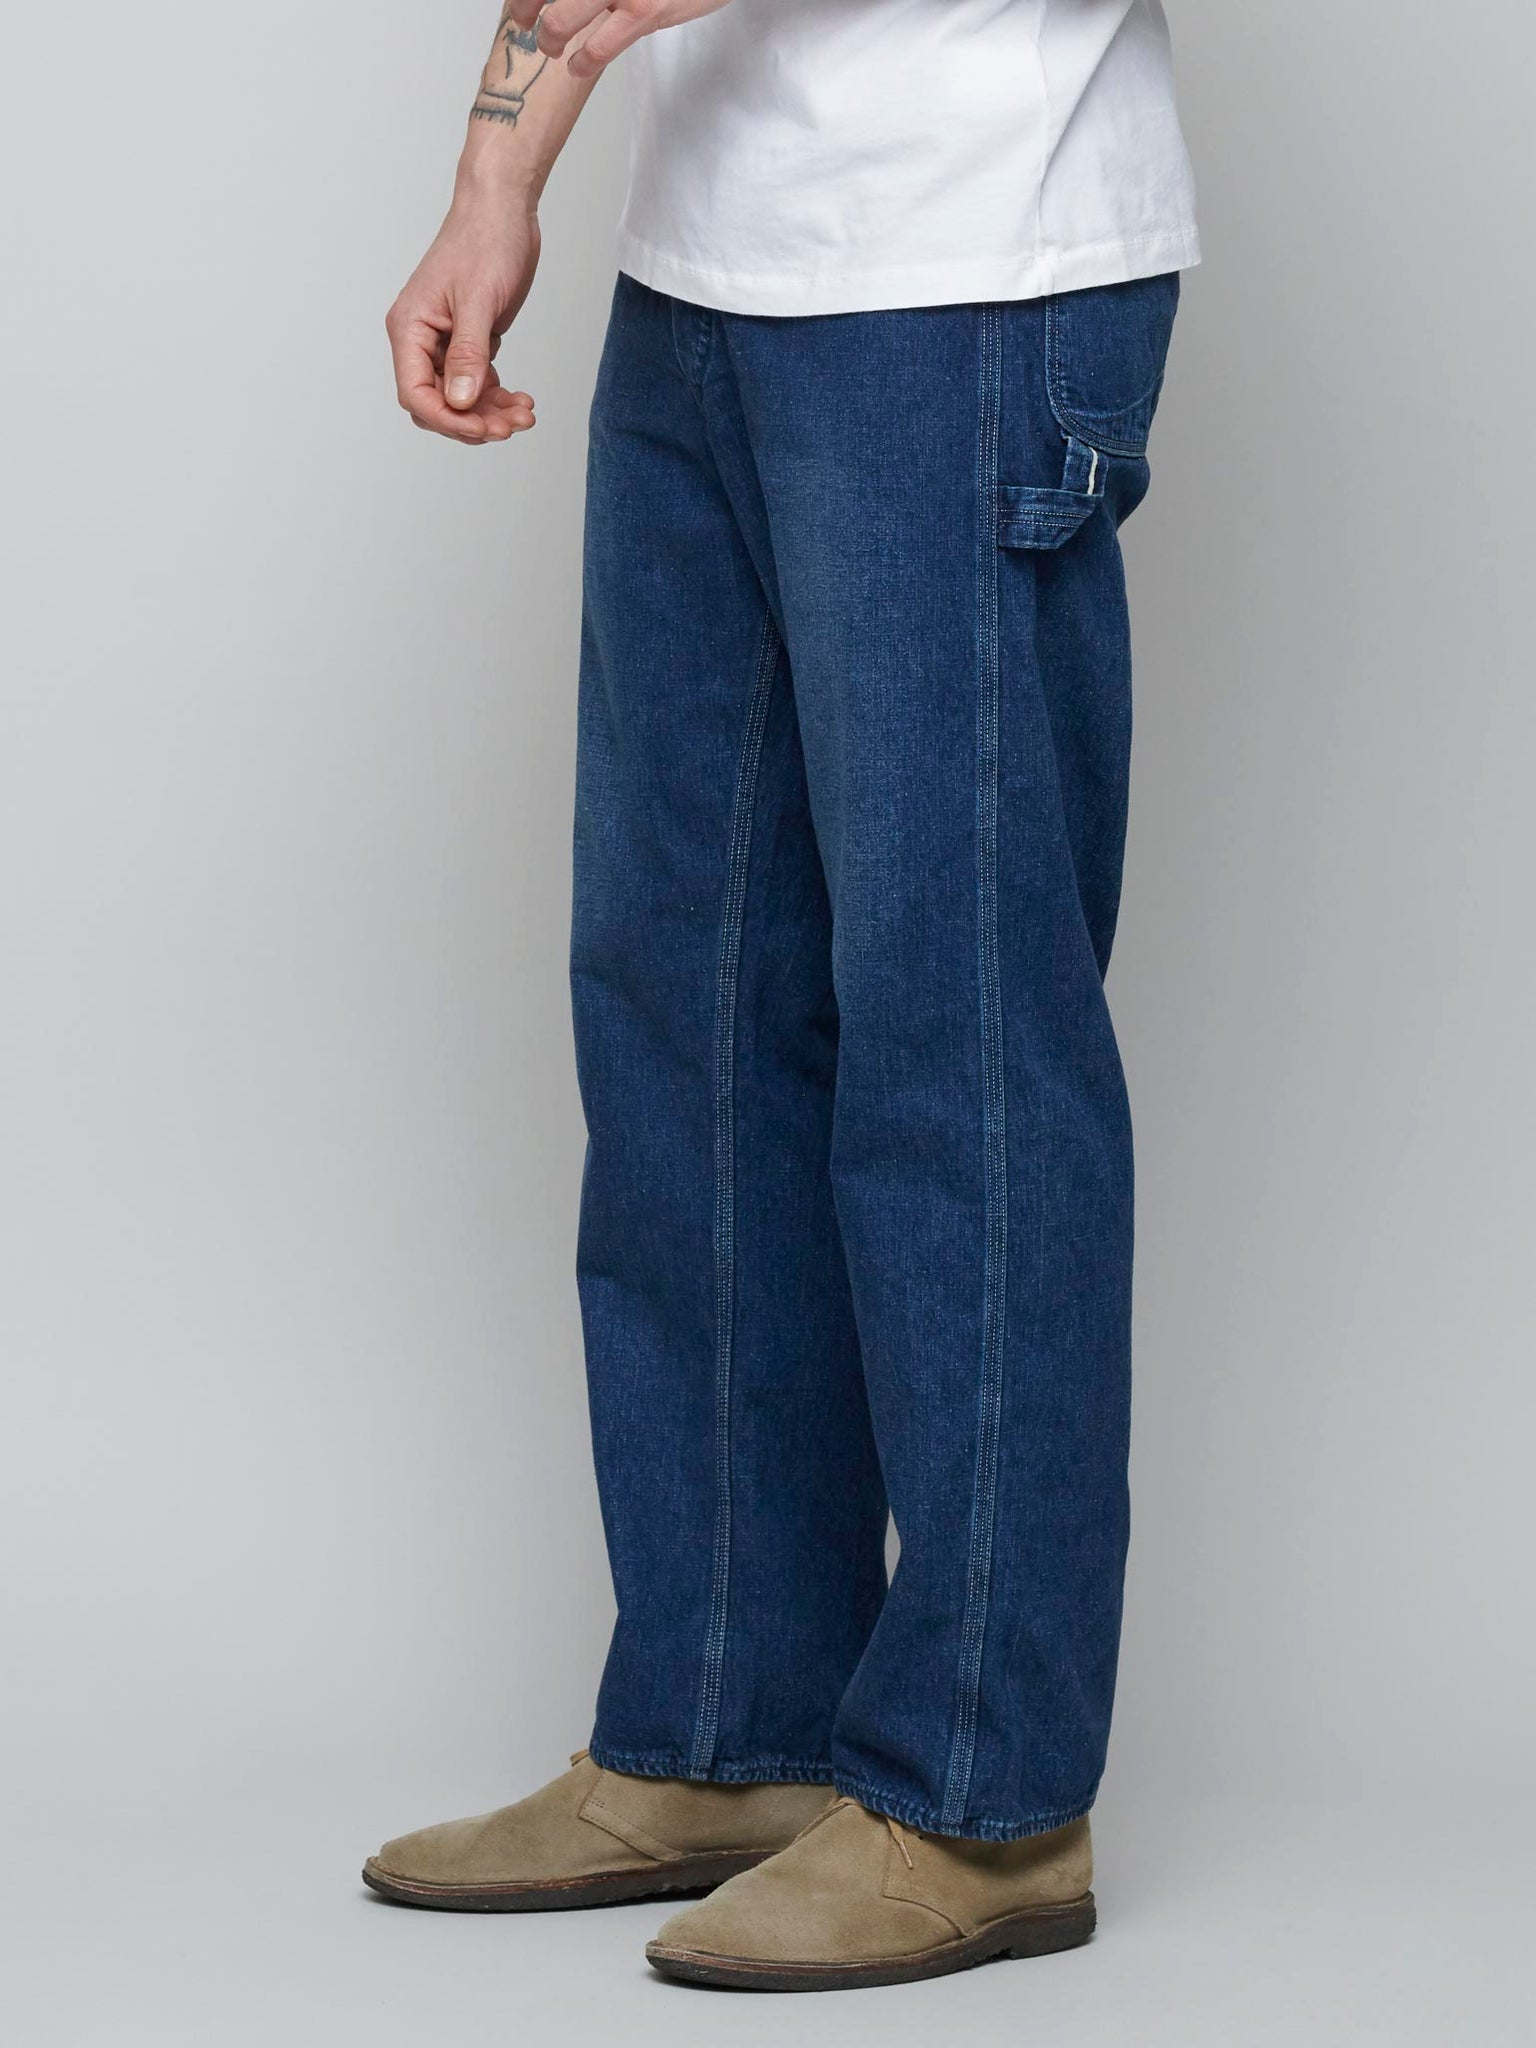 Painter Pant, Two Year Wash